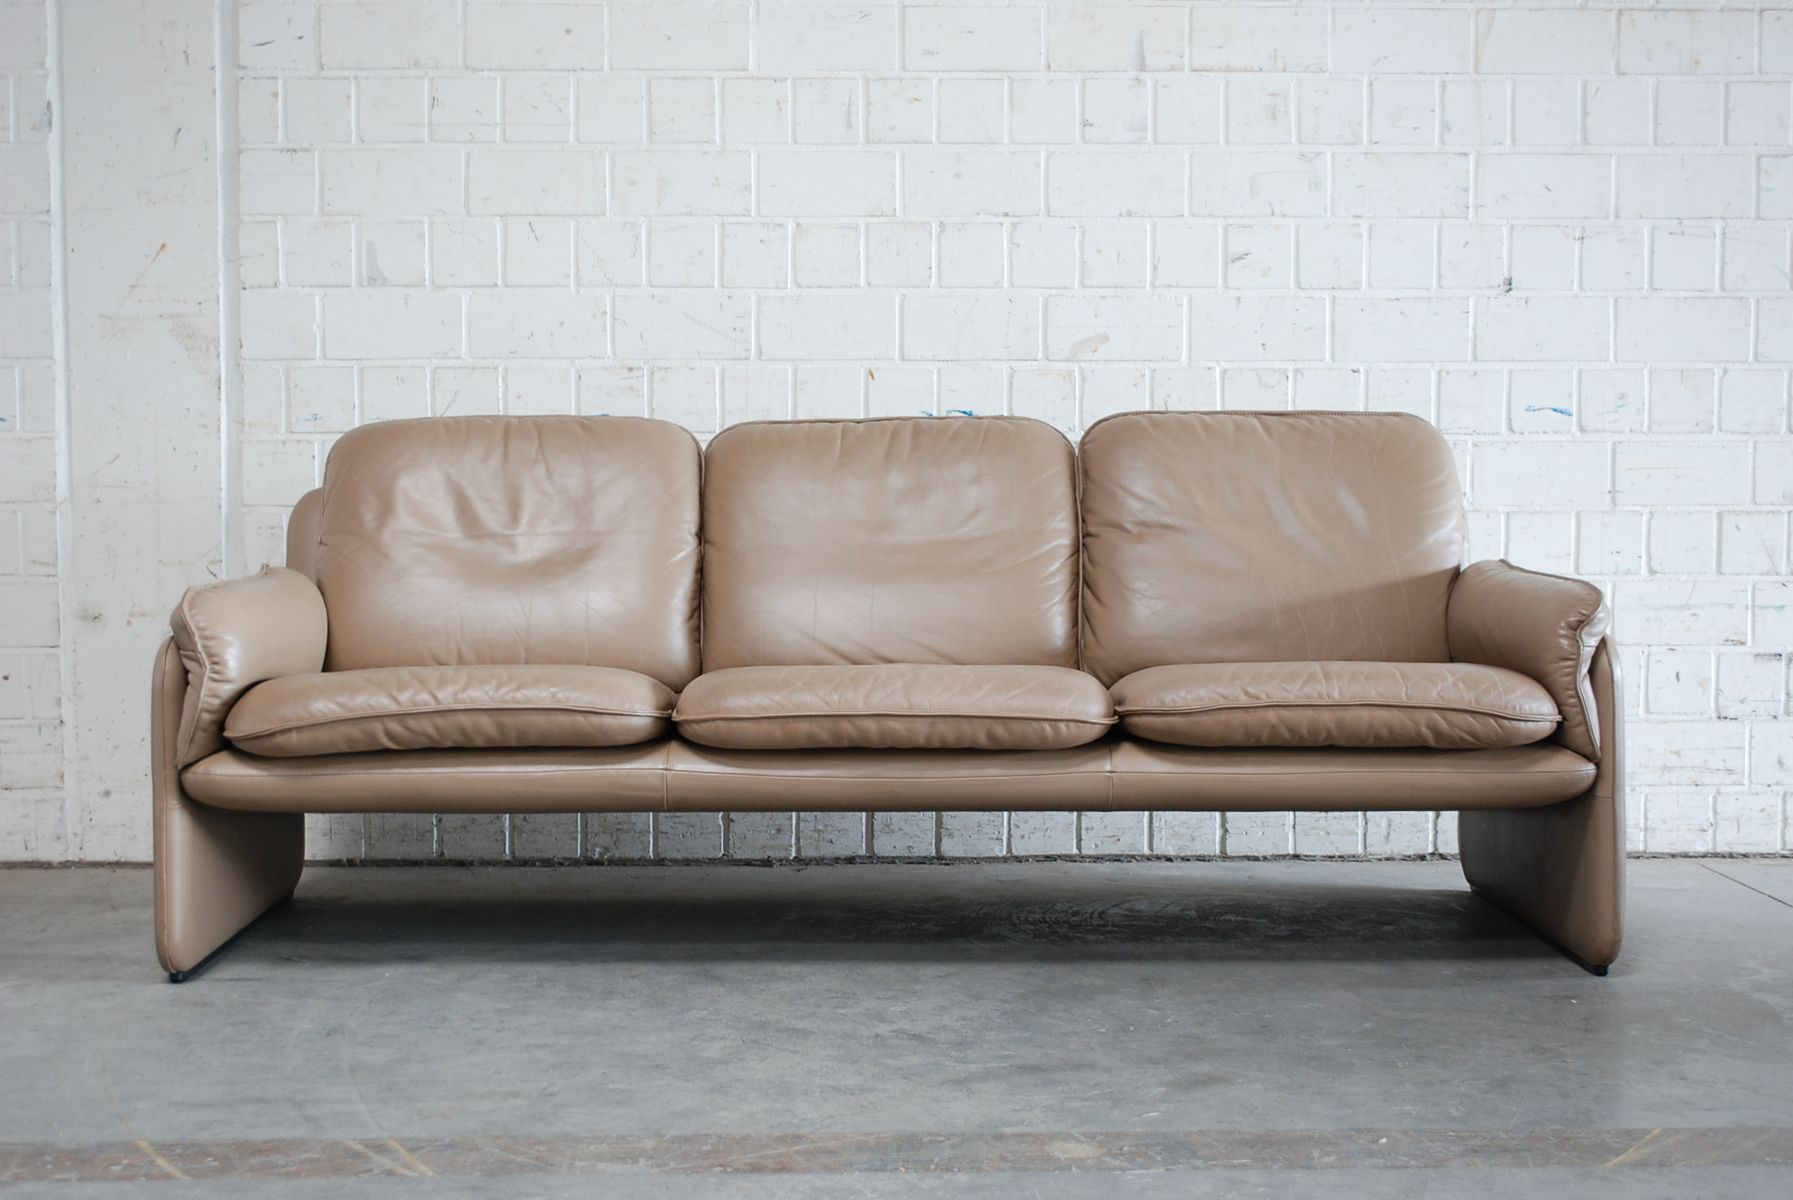 Vintage DS 61 Leather Sofa And Lounge Chair From De Sede